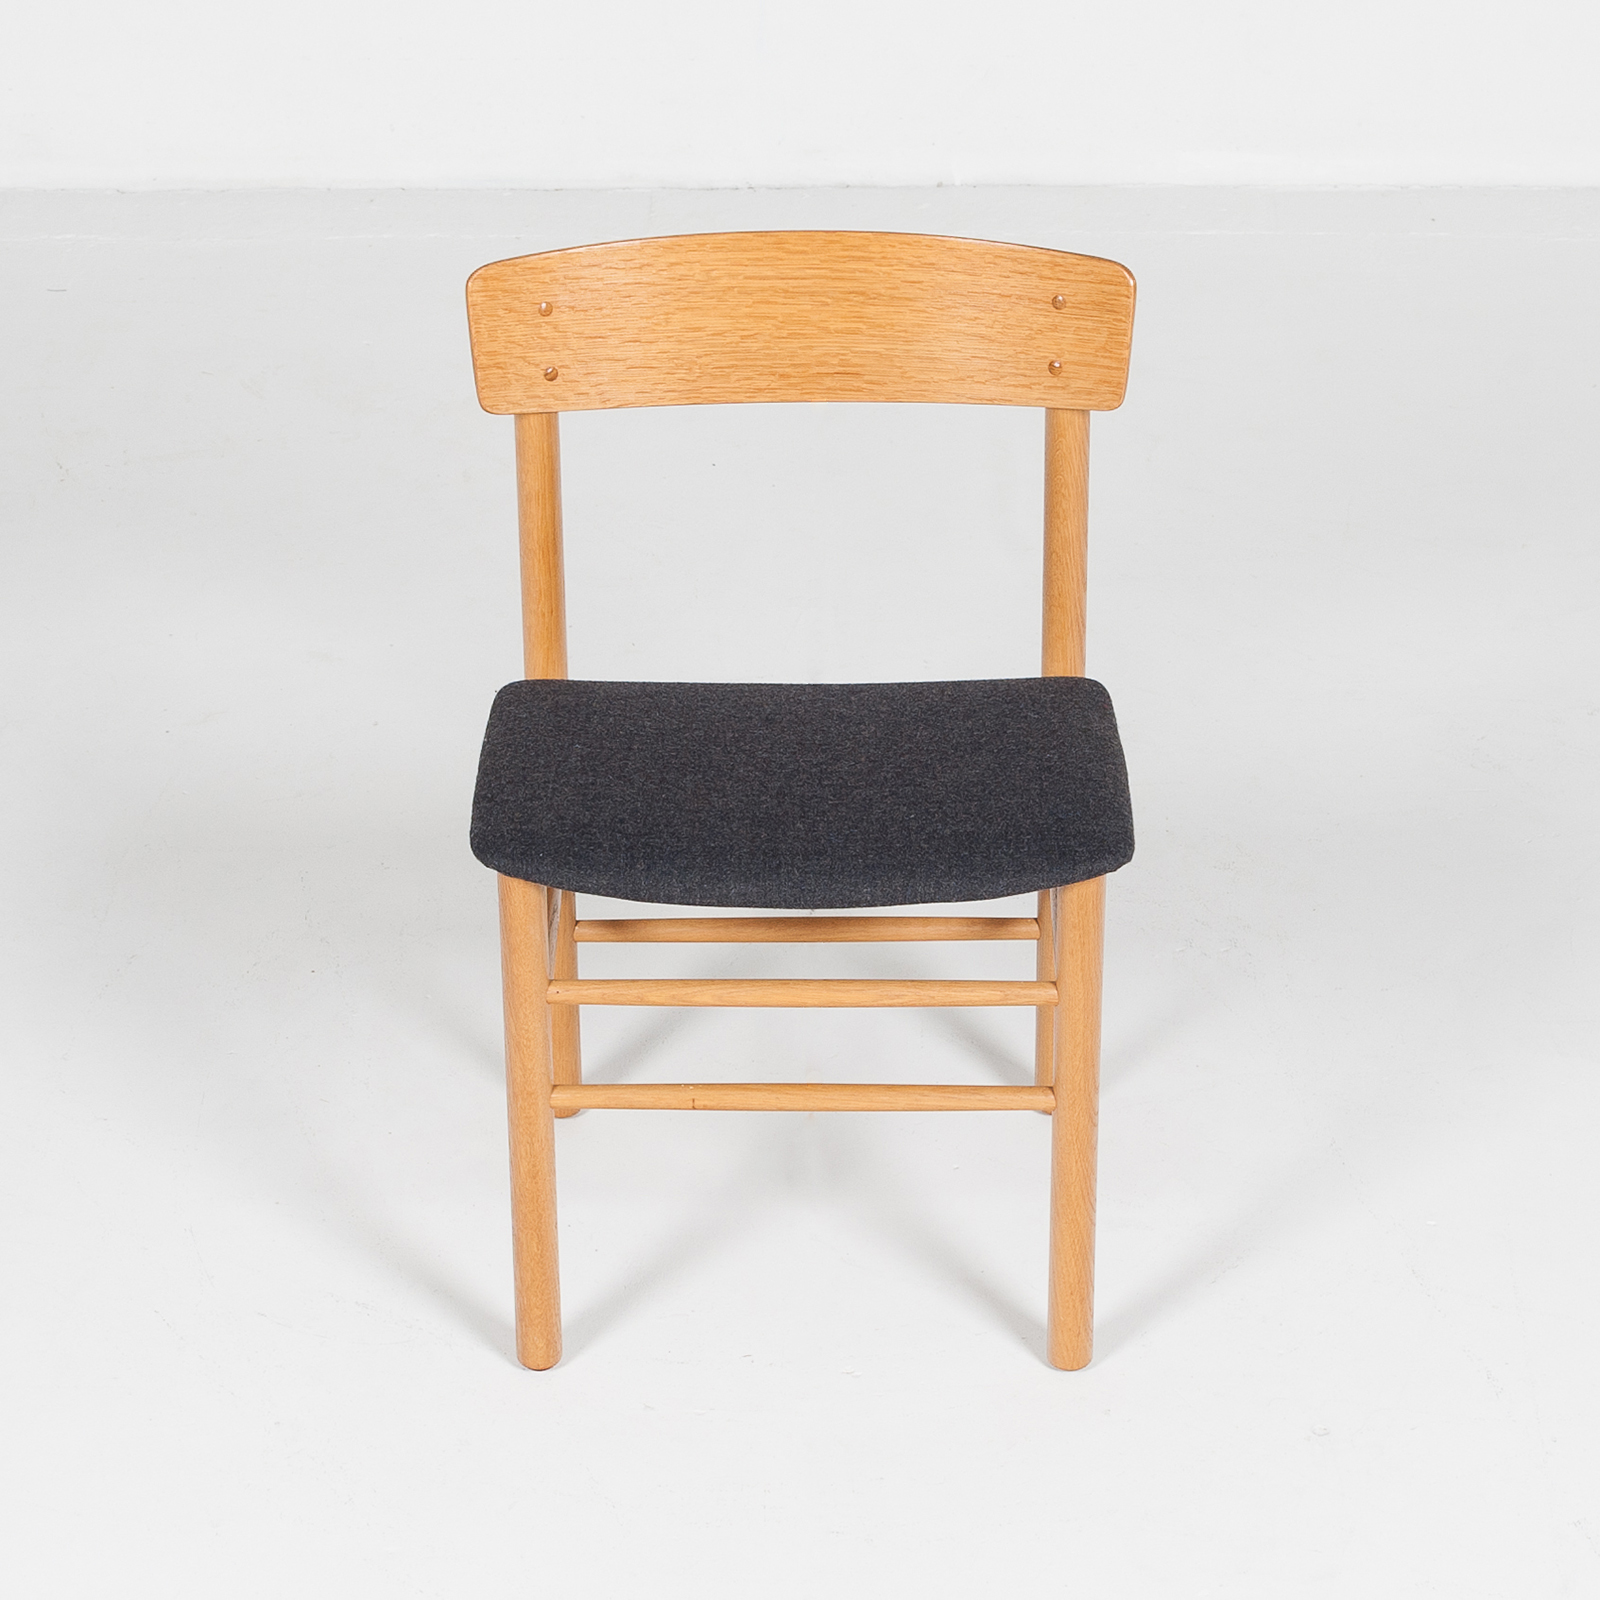 Set Of 4 Shaker Style Dining Chairs By Farstrup In Oak, 1960s, Denmark62